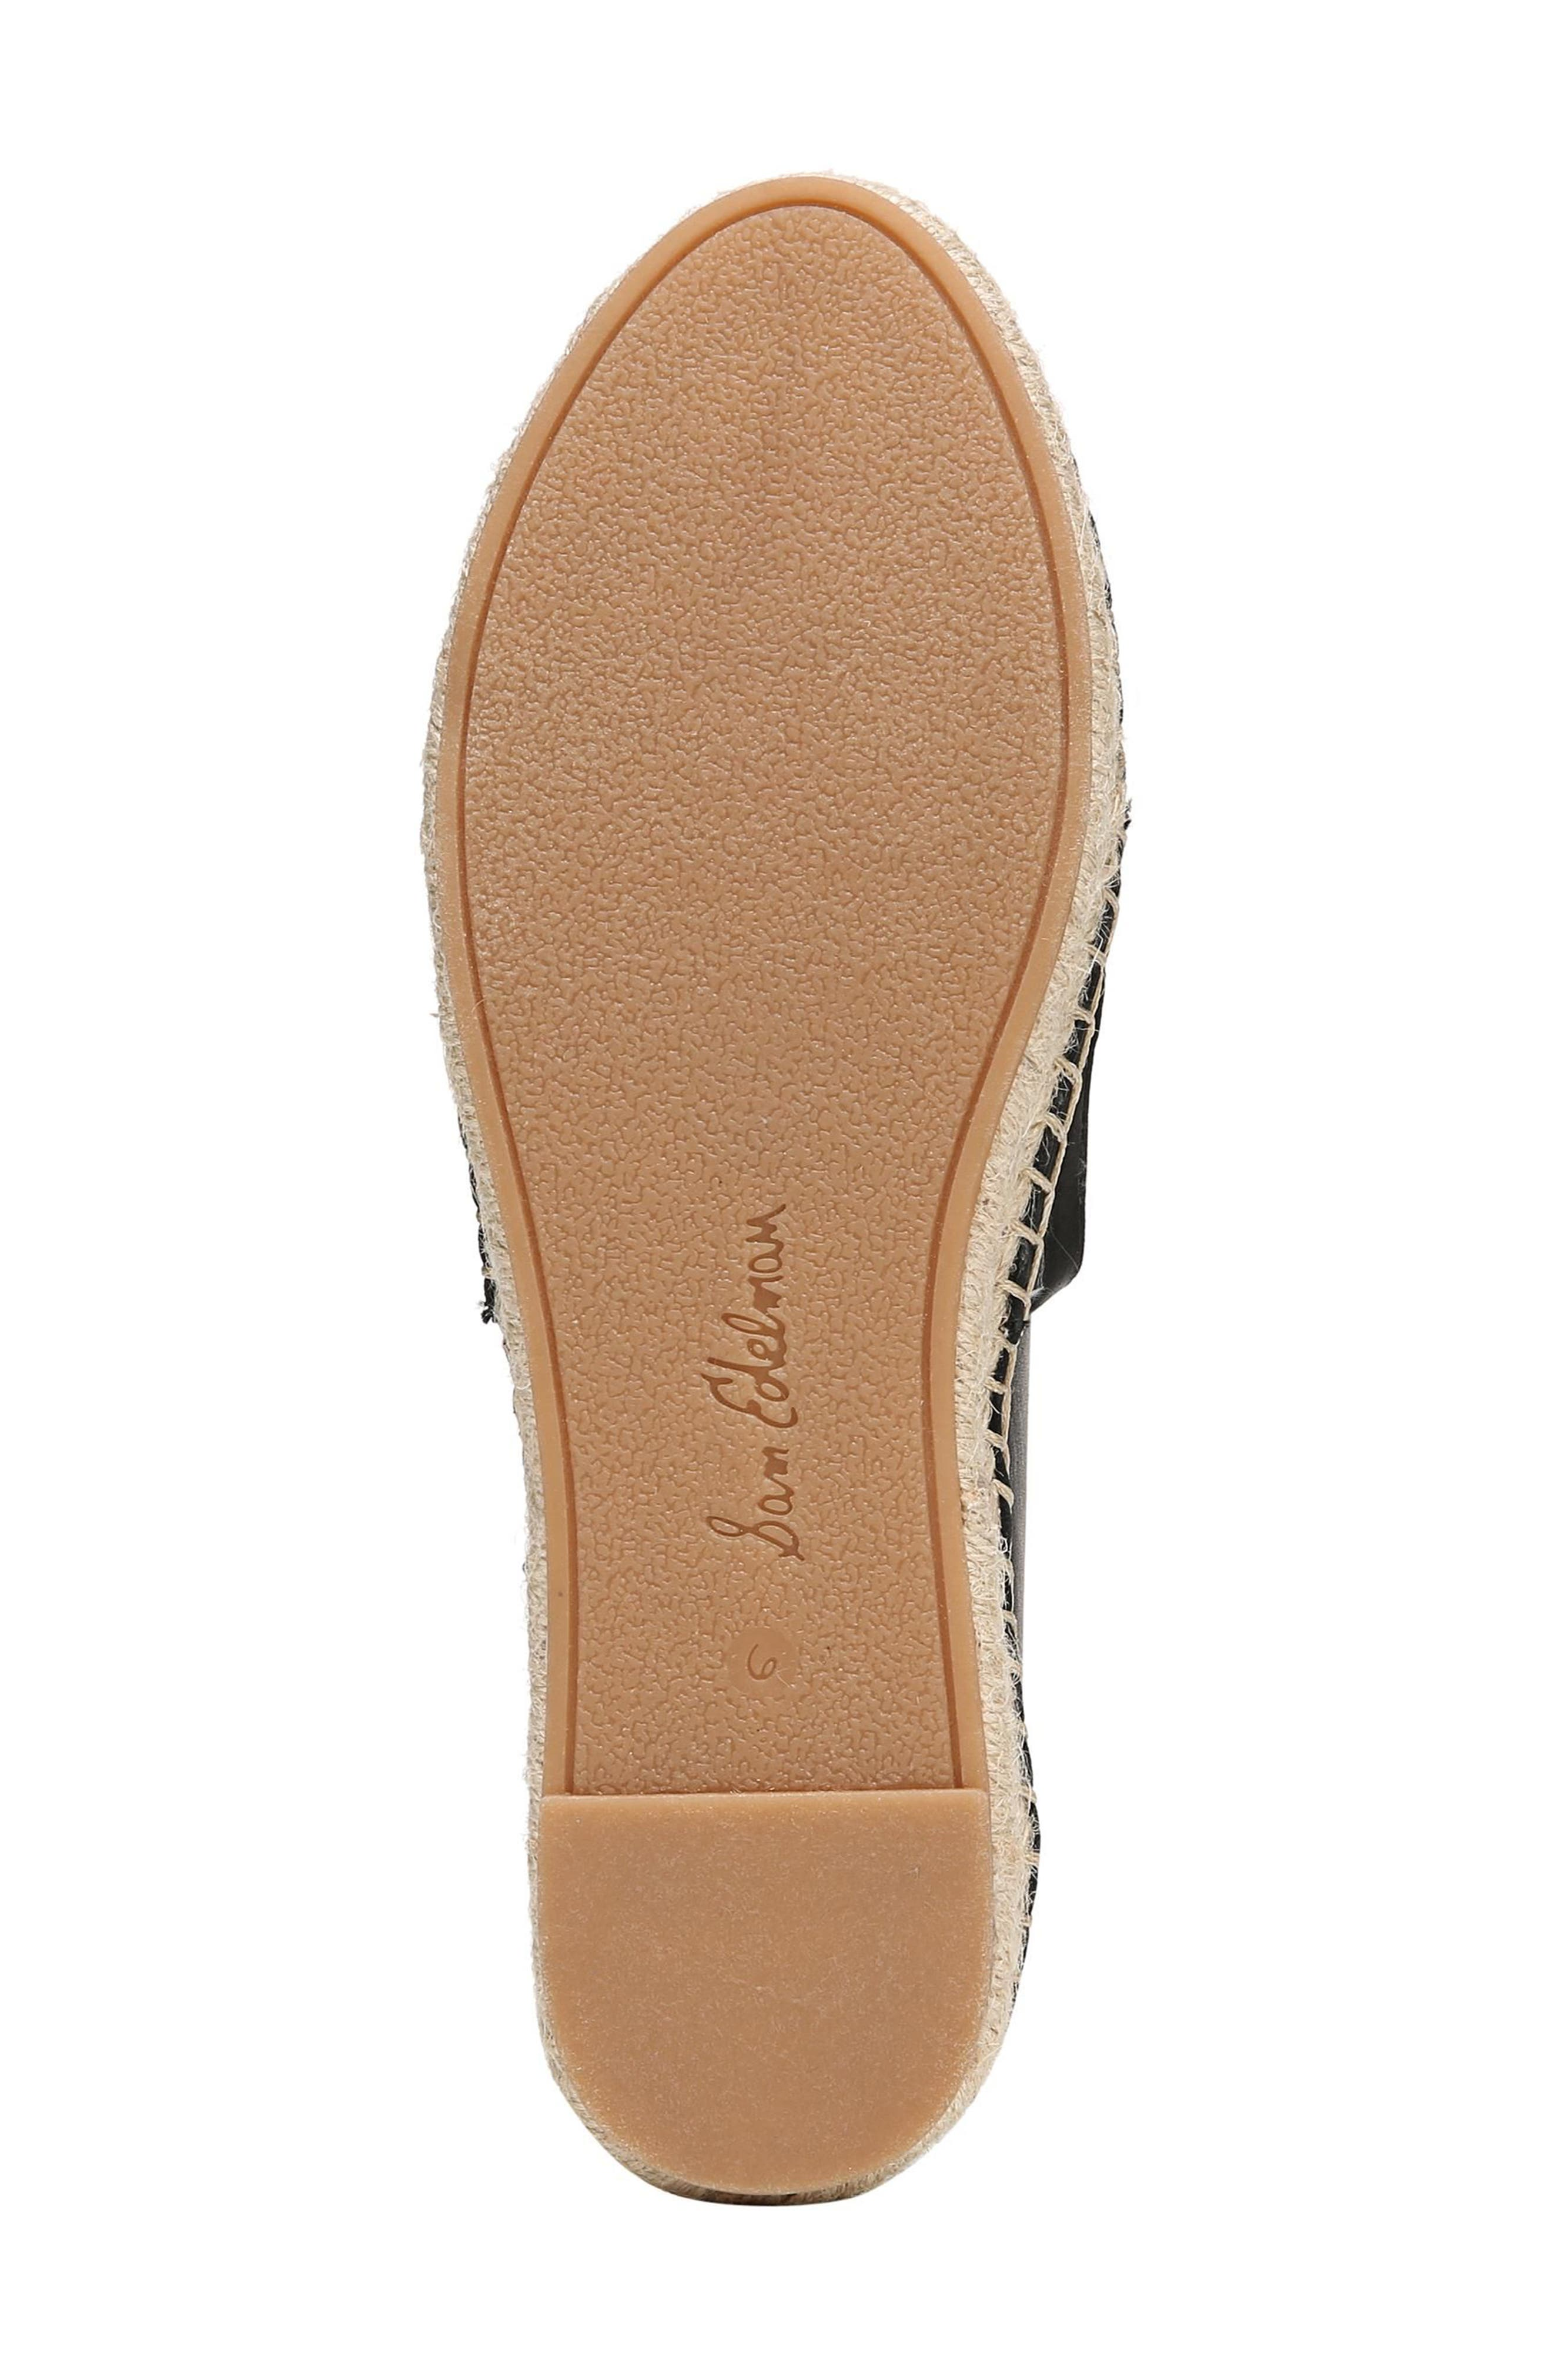 SAM EDELMAN, Khloe Espadrille Flat, Alternate thumbnail 6, color, BLACK LEATHER